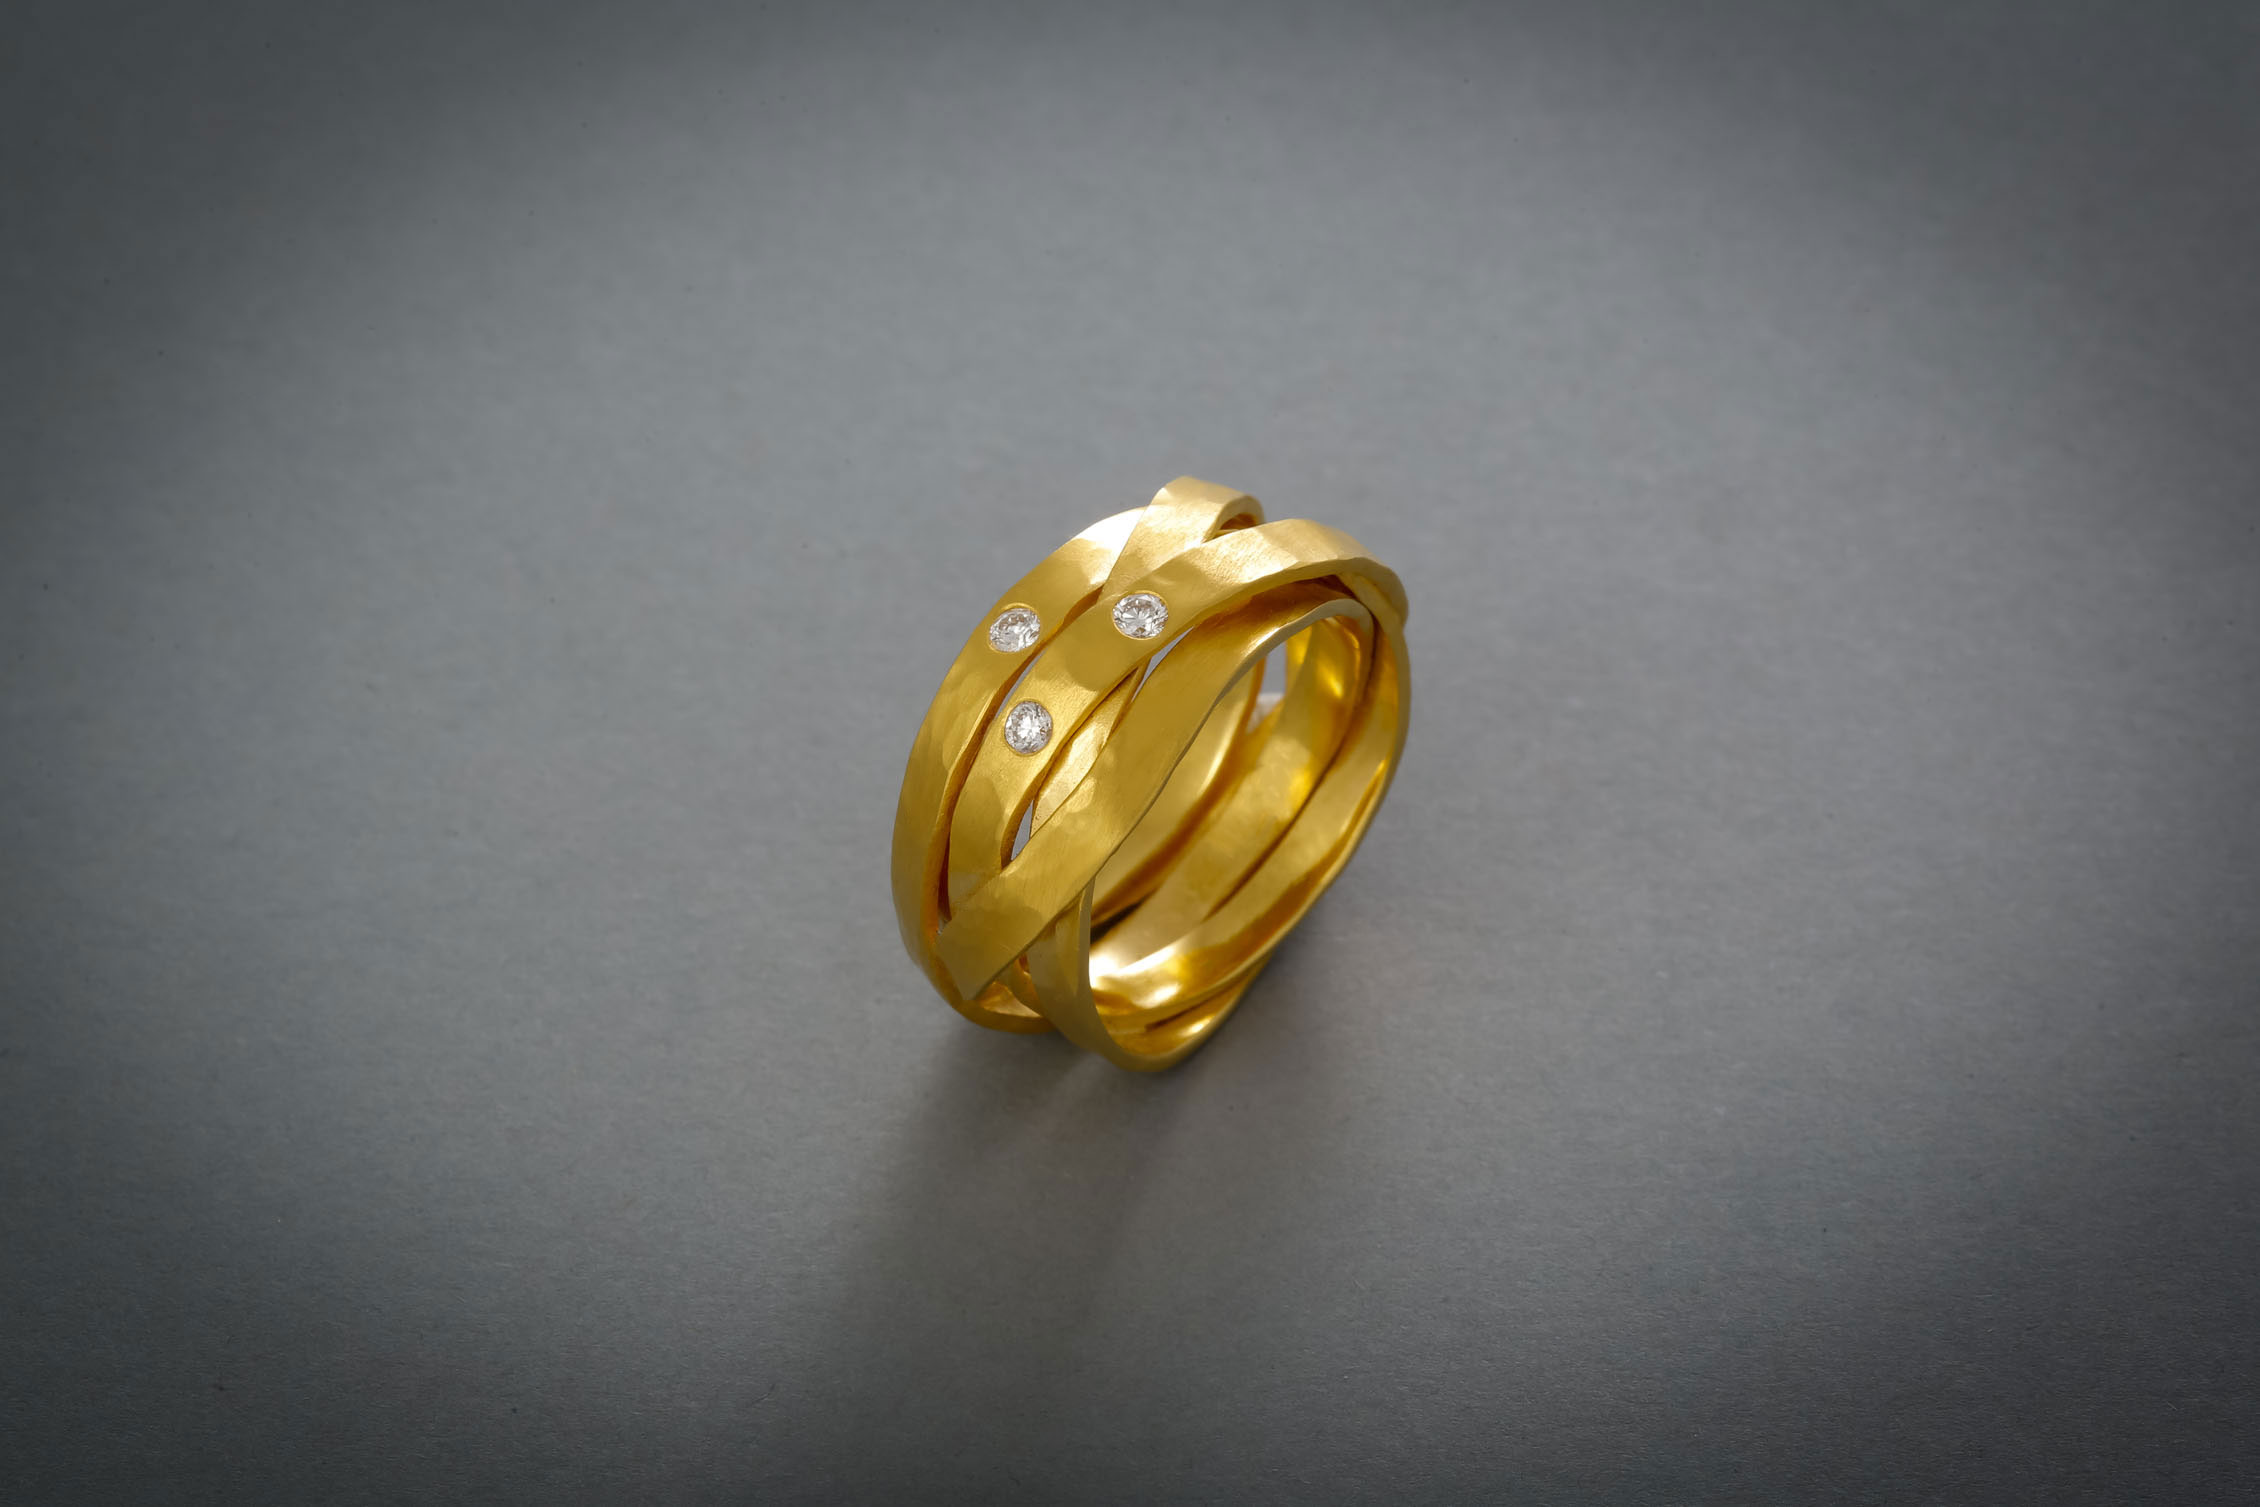 082 Wickelring, Gold, 3 Brillanten ab € 1548,-